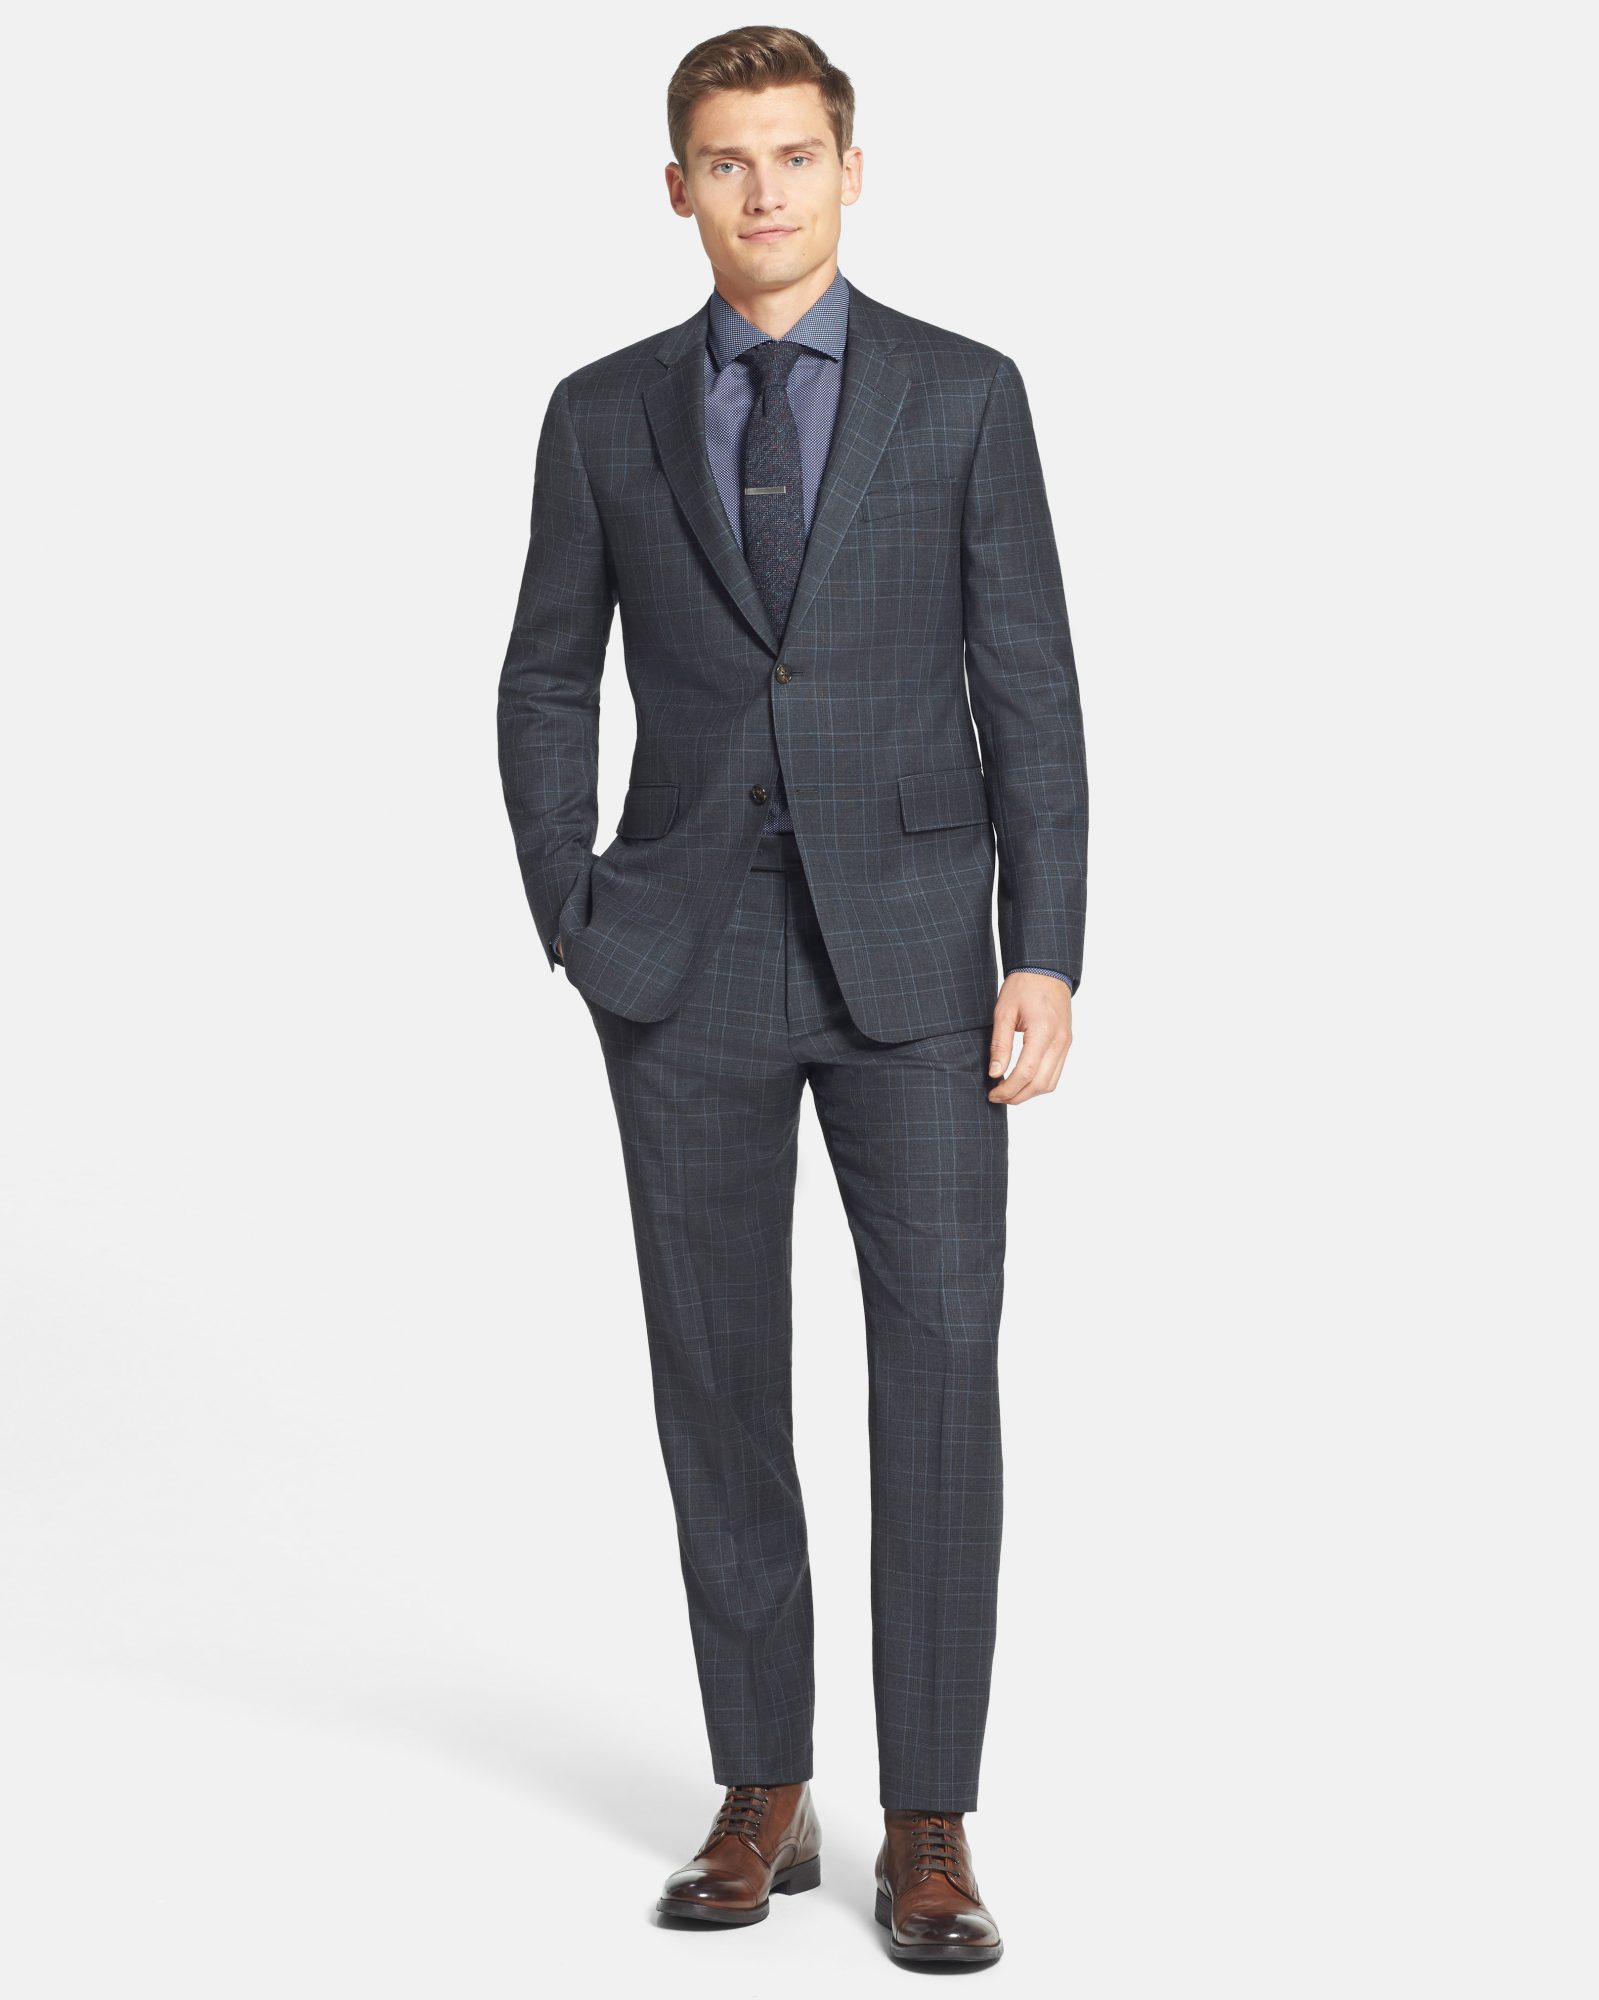 fall-groom-suits-nordstrom-todd-snyder-plaid-suit-1014.jpg